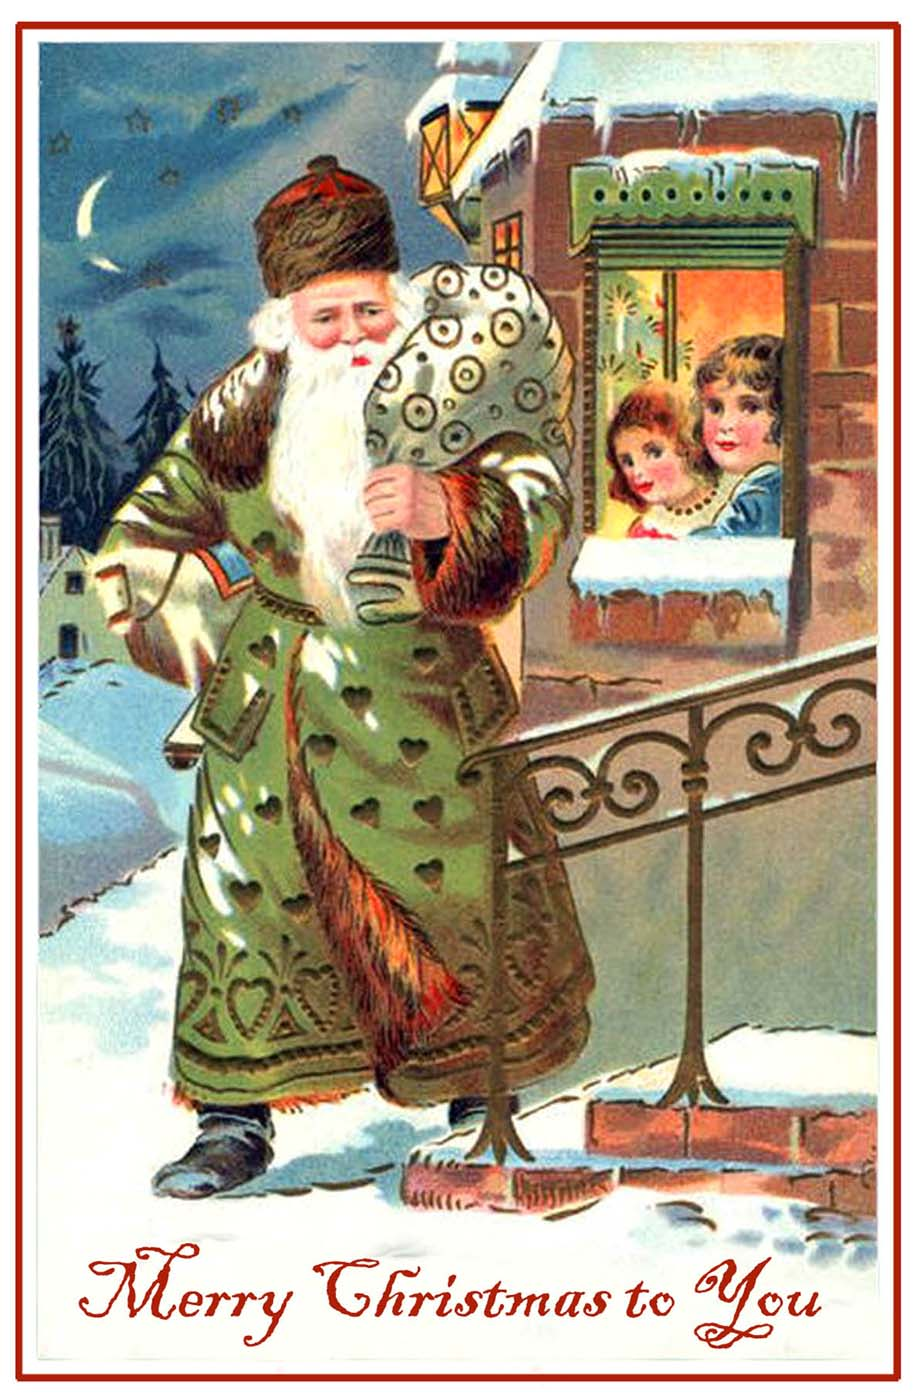 Christmas post card of a green clad Santa Claus with children looking at him through a window